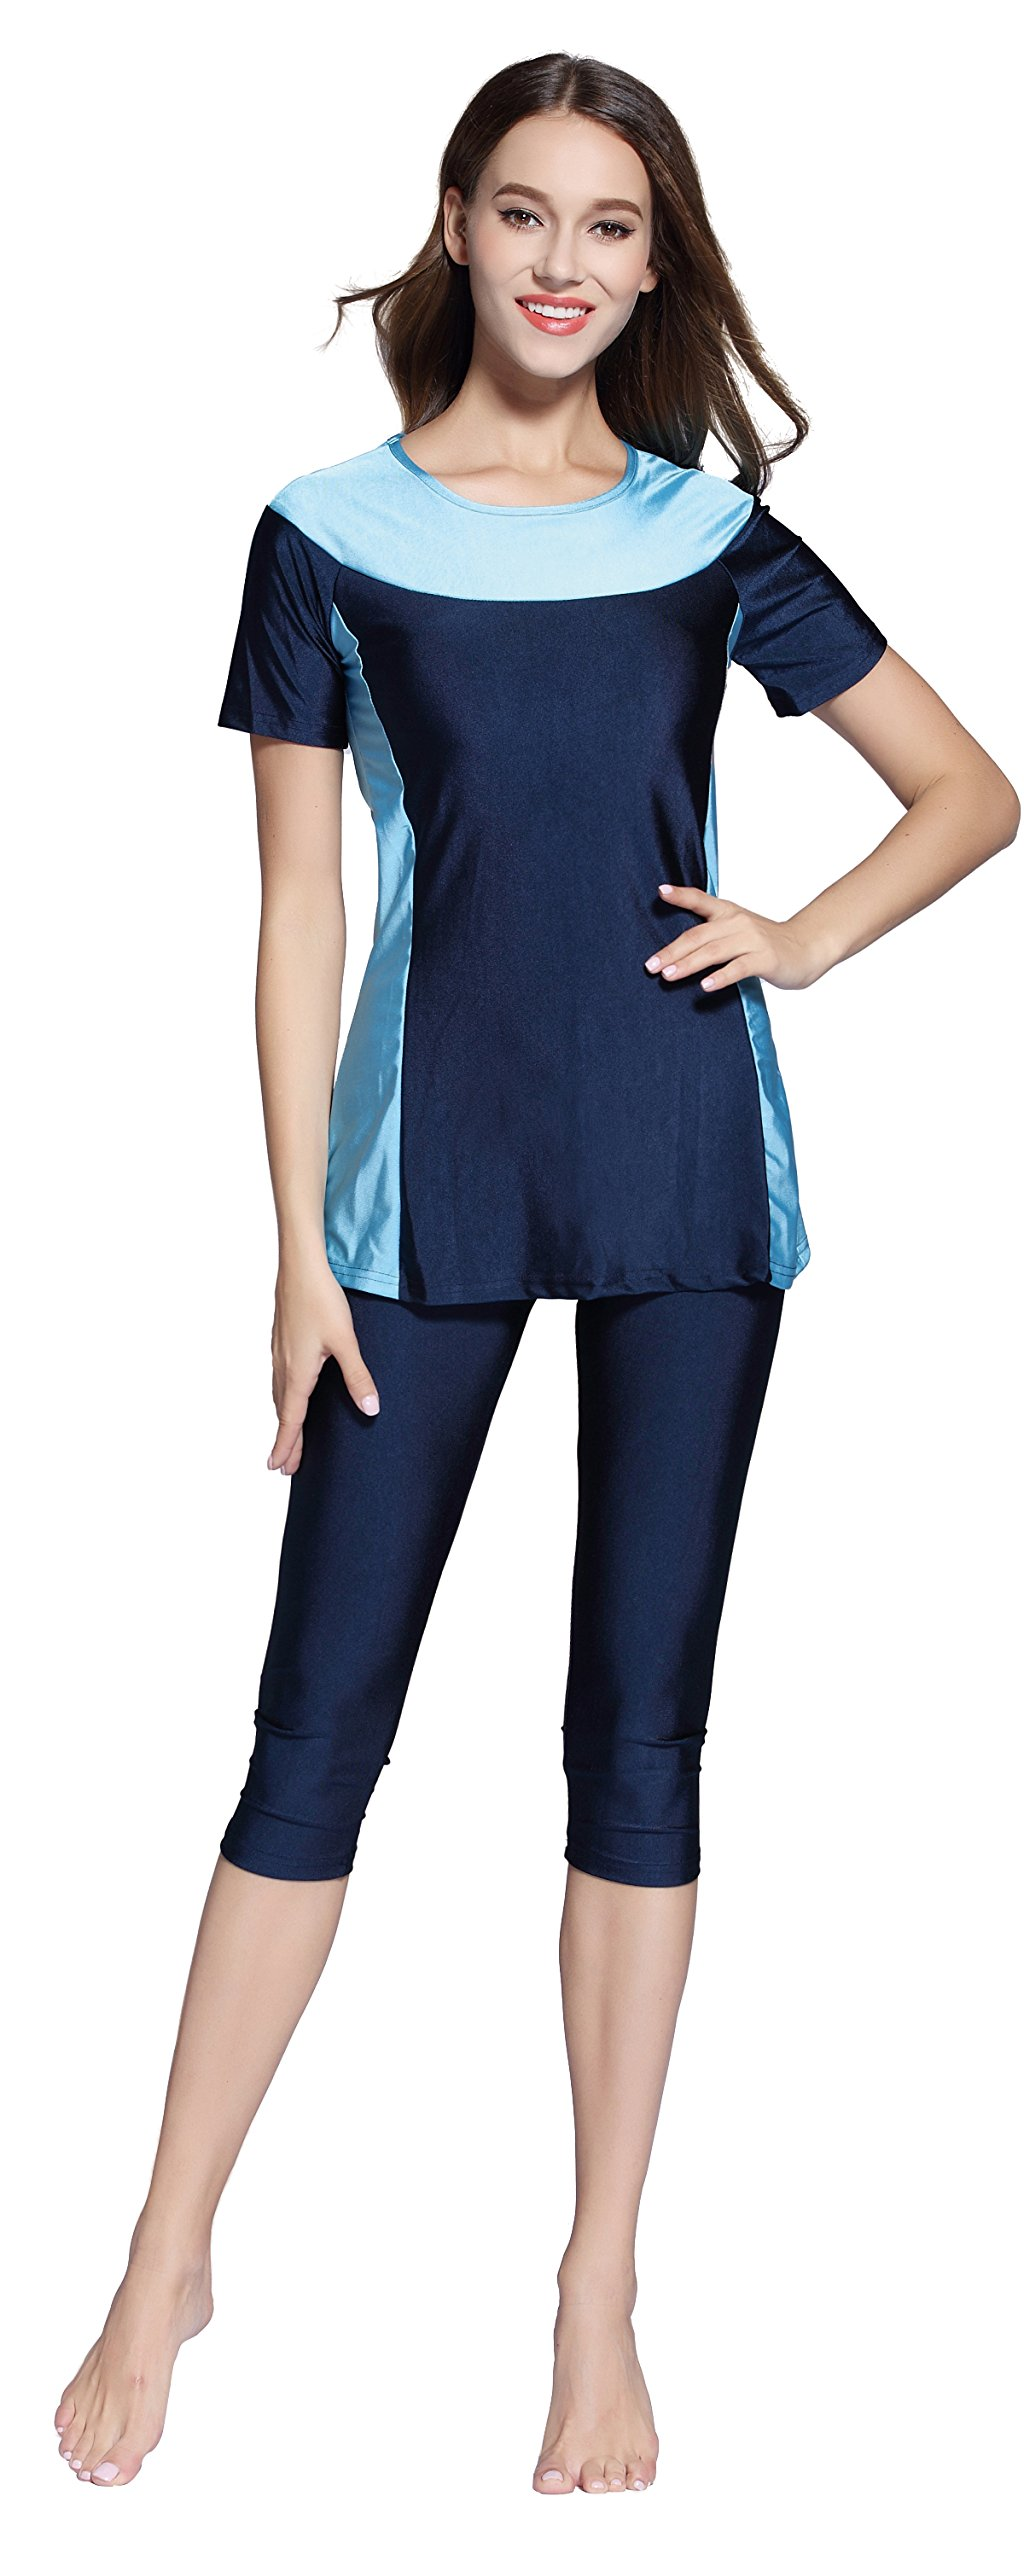 Ababalaya Womens' Color Block Moderate Cover 2 Piece Swimsuit Burkini, Navy Blue, XXXXL